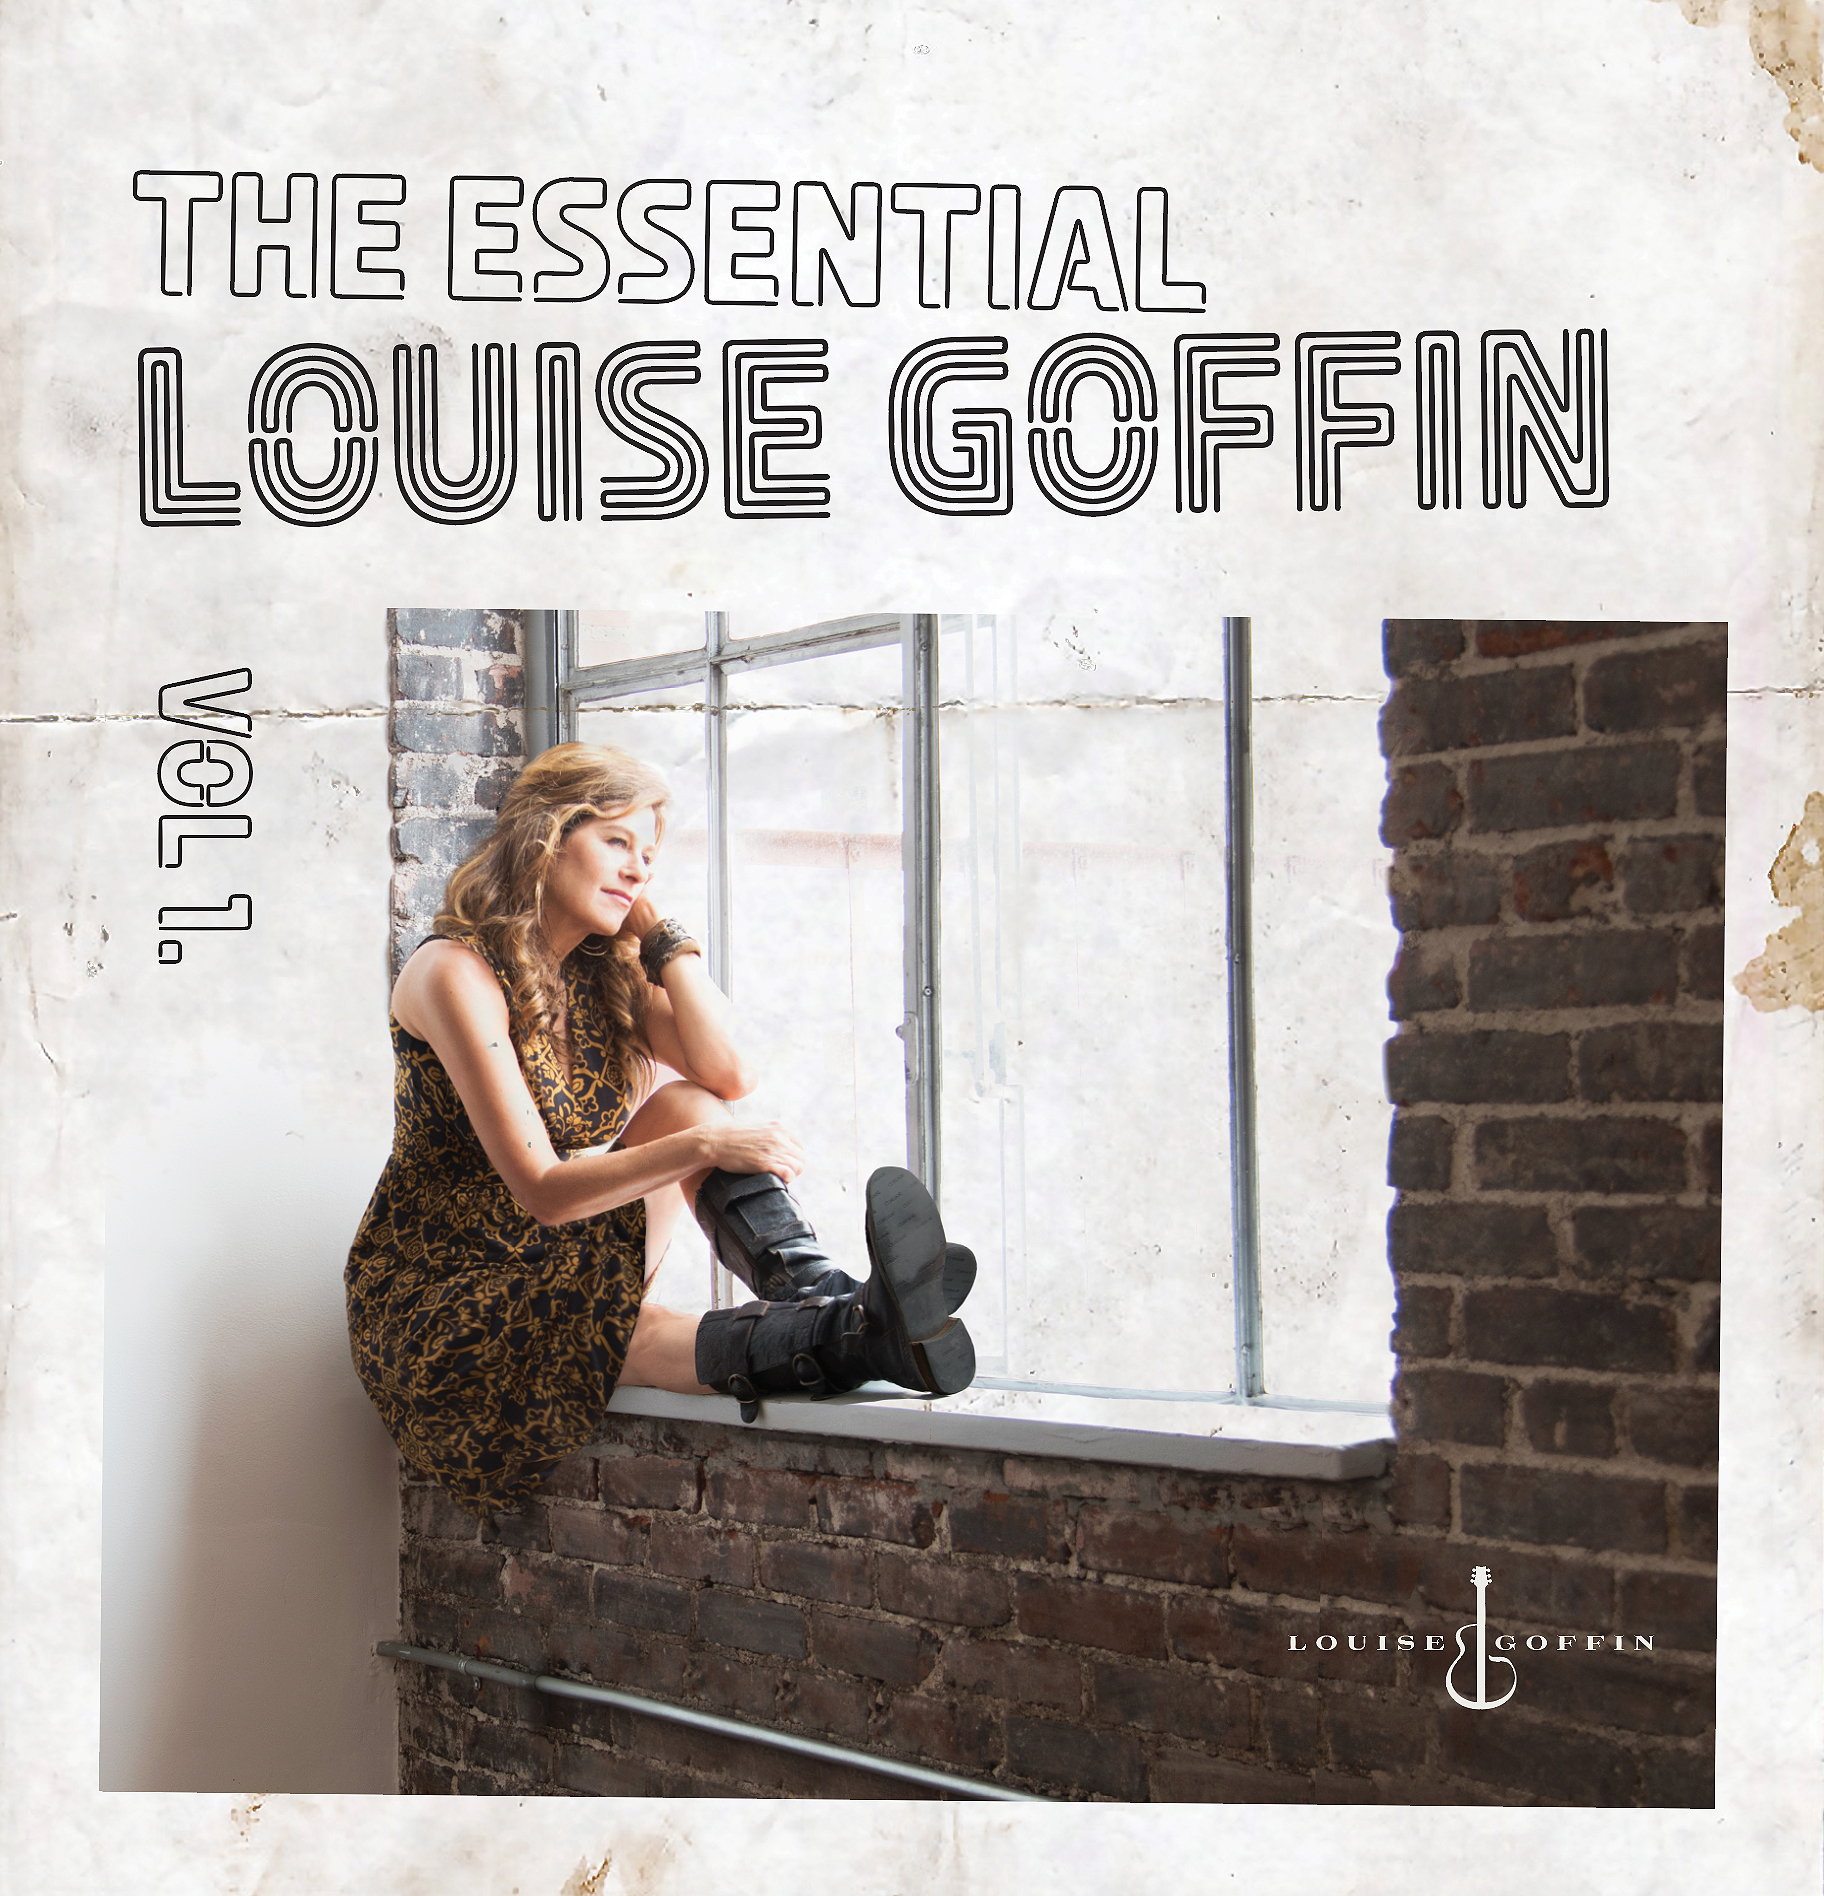 The Essential louise goffin, Vol. 1 -